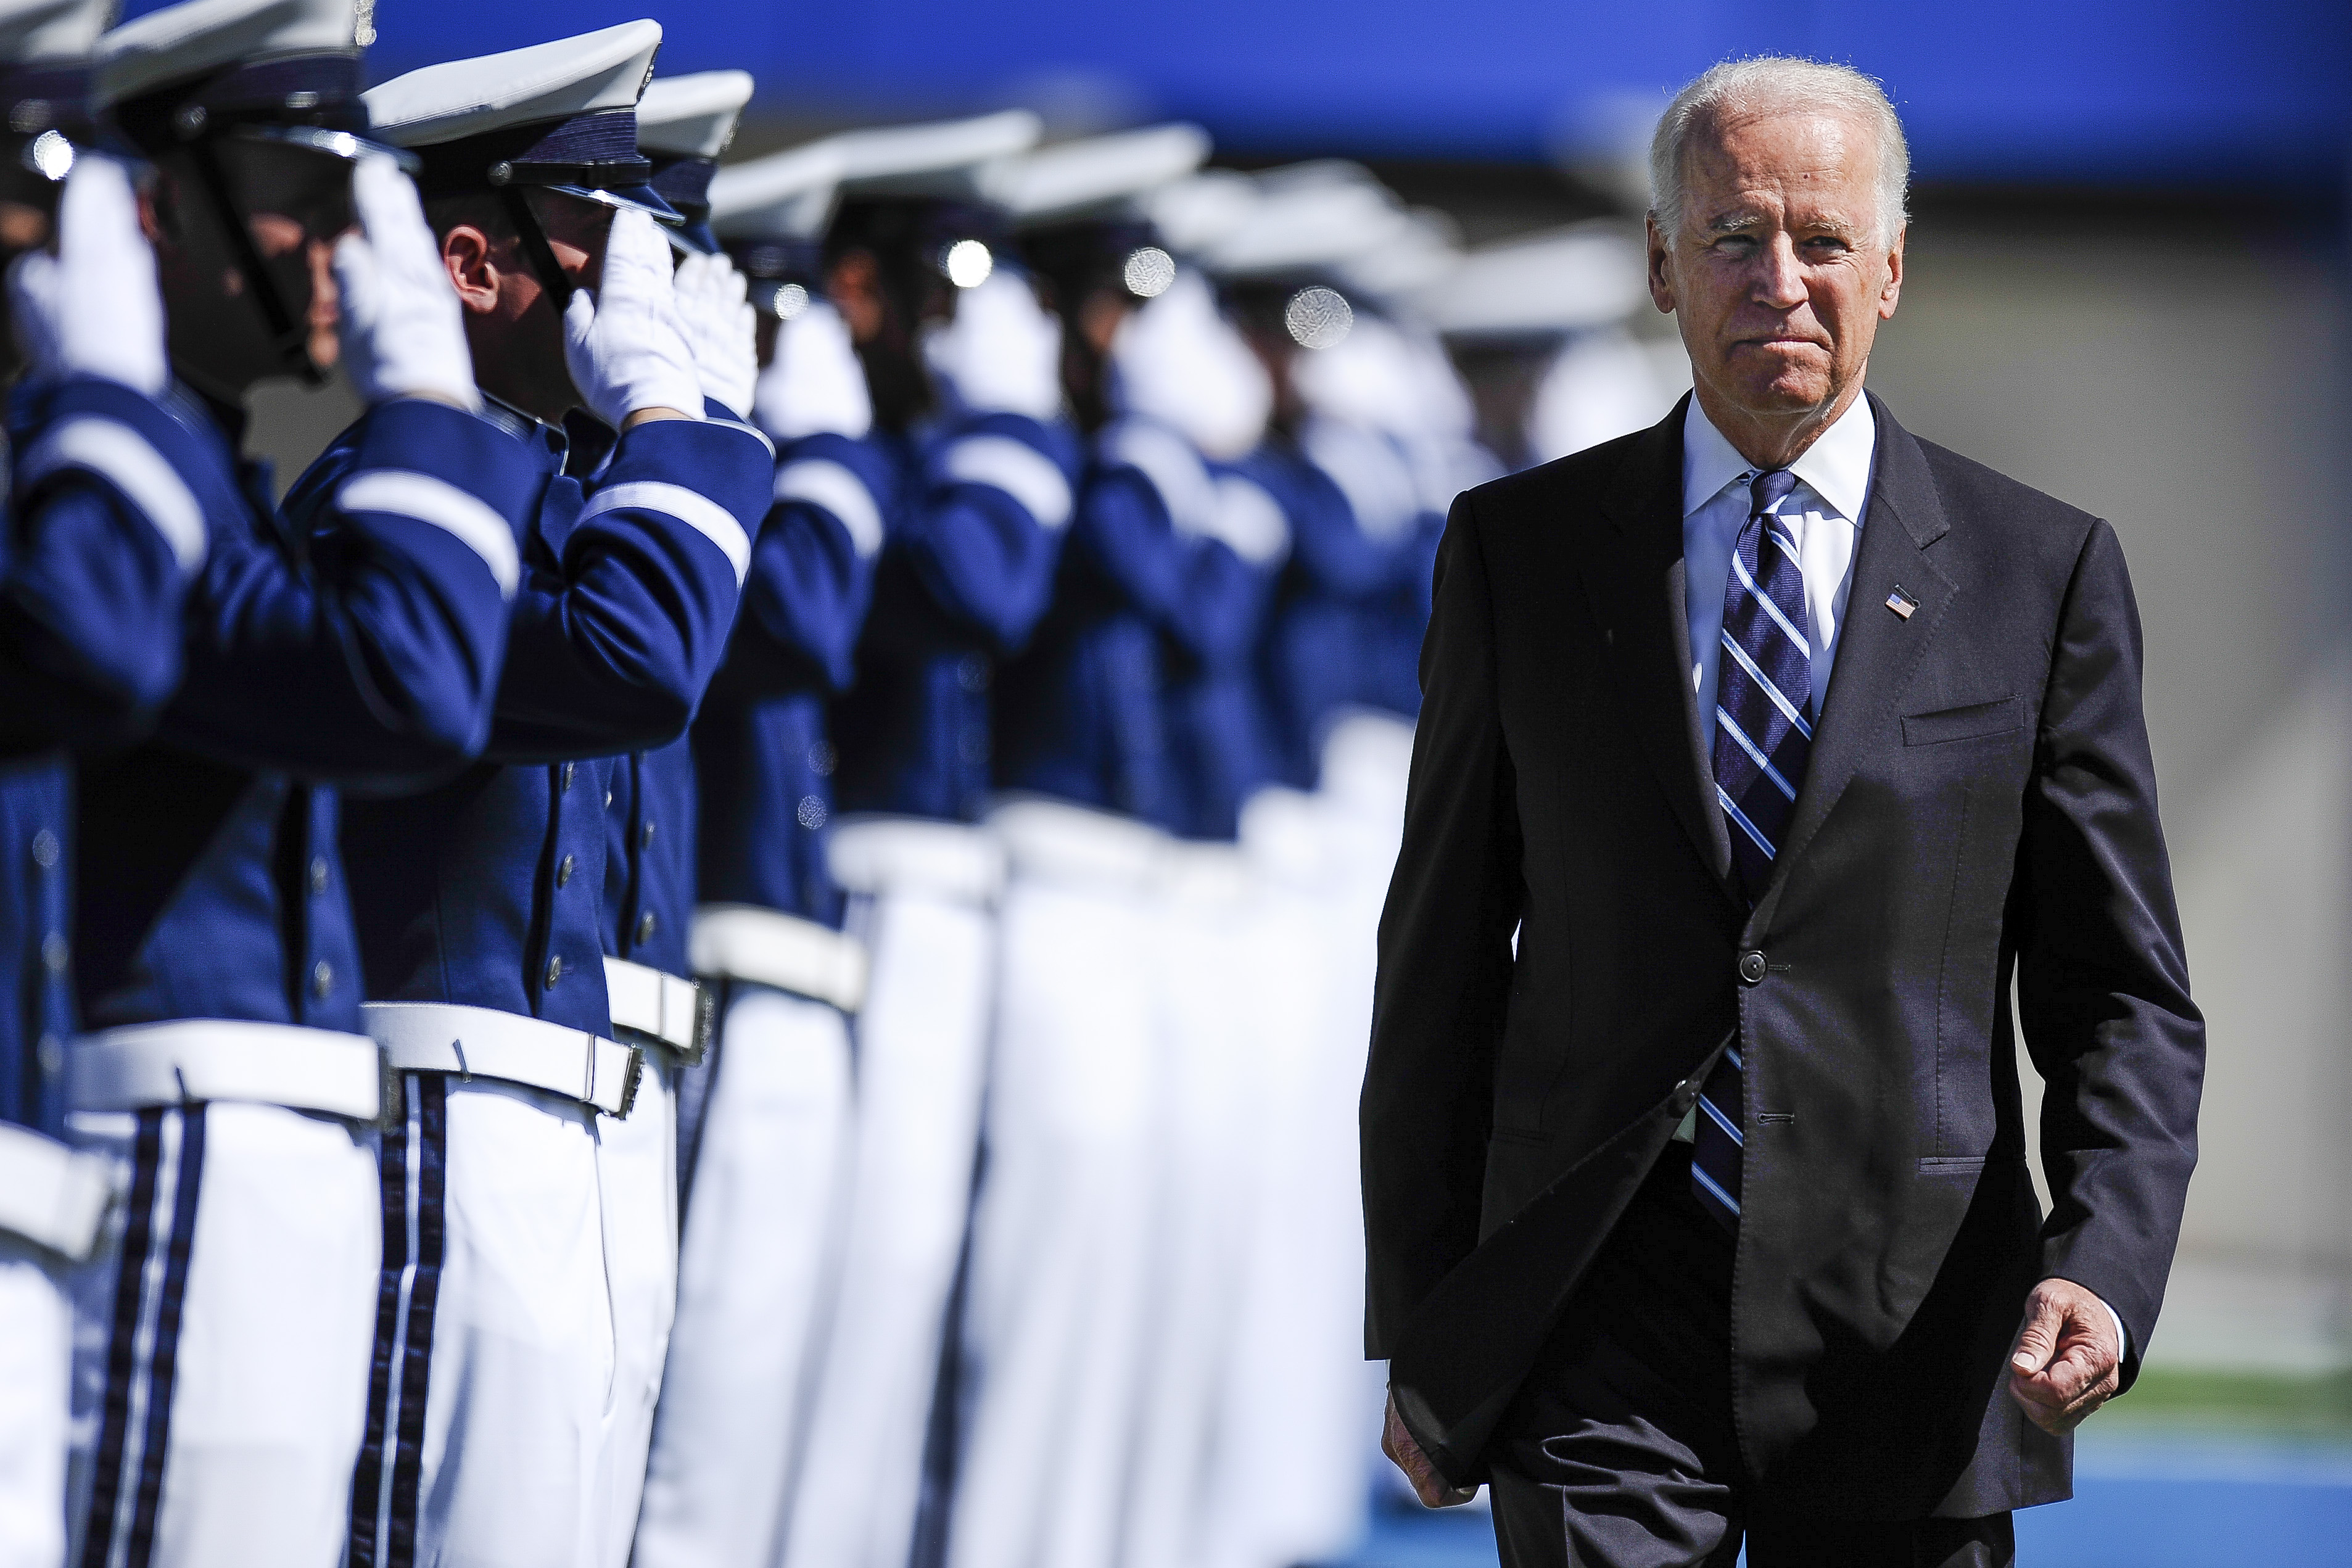 Vice President Joe Biden walks to the stage during the graduation ceremony for the United States Air Force Academy class of 2014 at Falcon Stadium in Colorado Springs, Colo. on May 28, 2014.